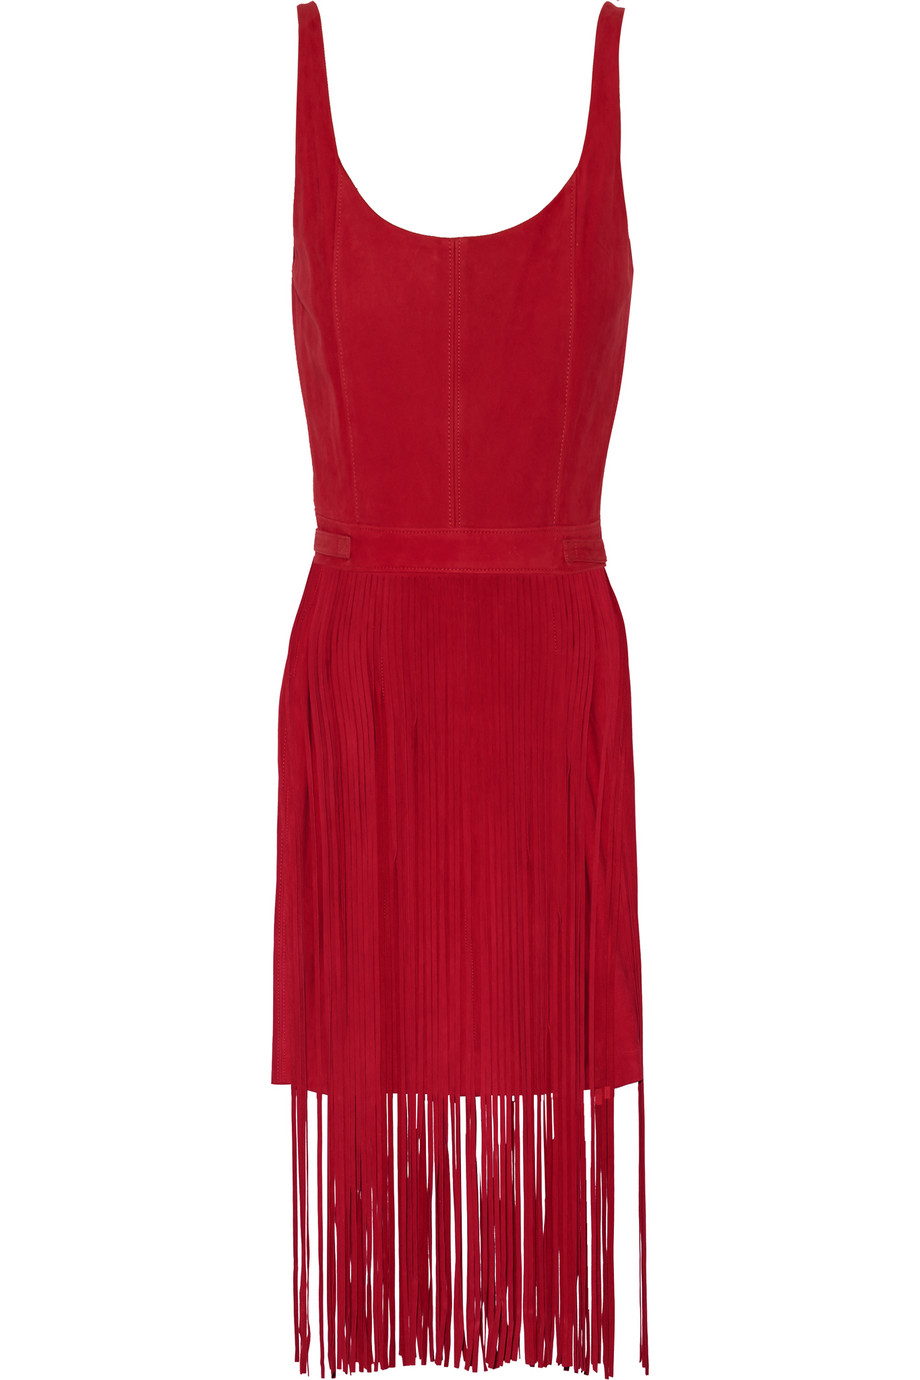 Tamara Mellon Fringed Suede Dress, Crimson, Women's, Size: 4